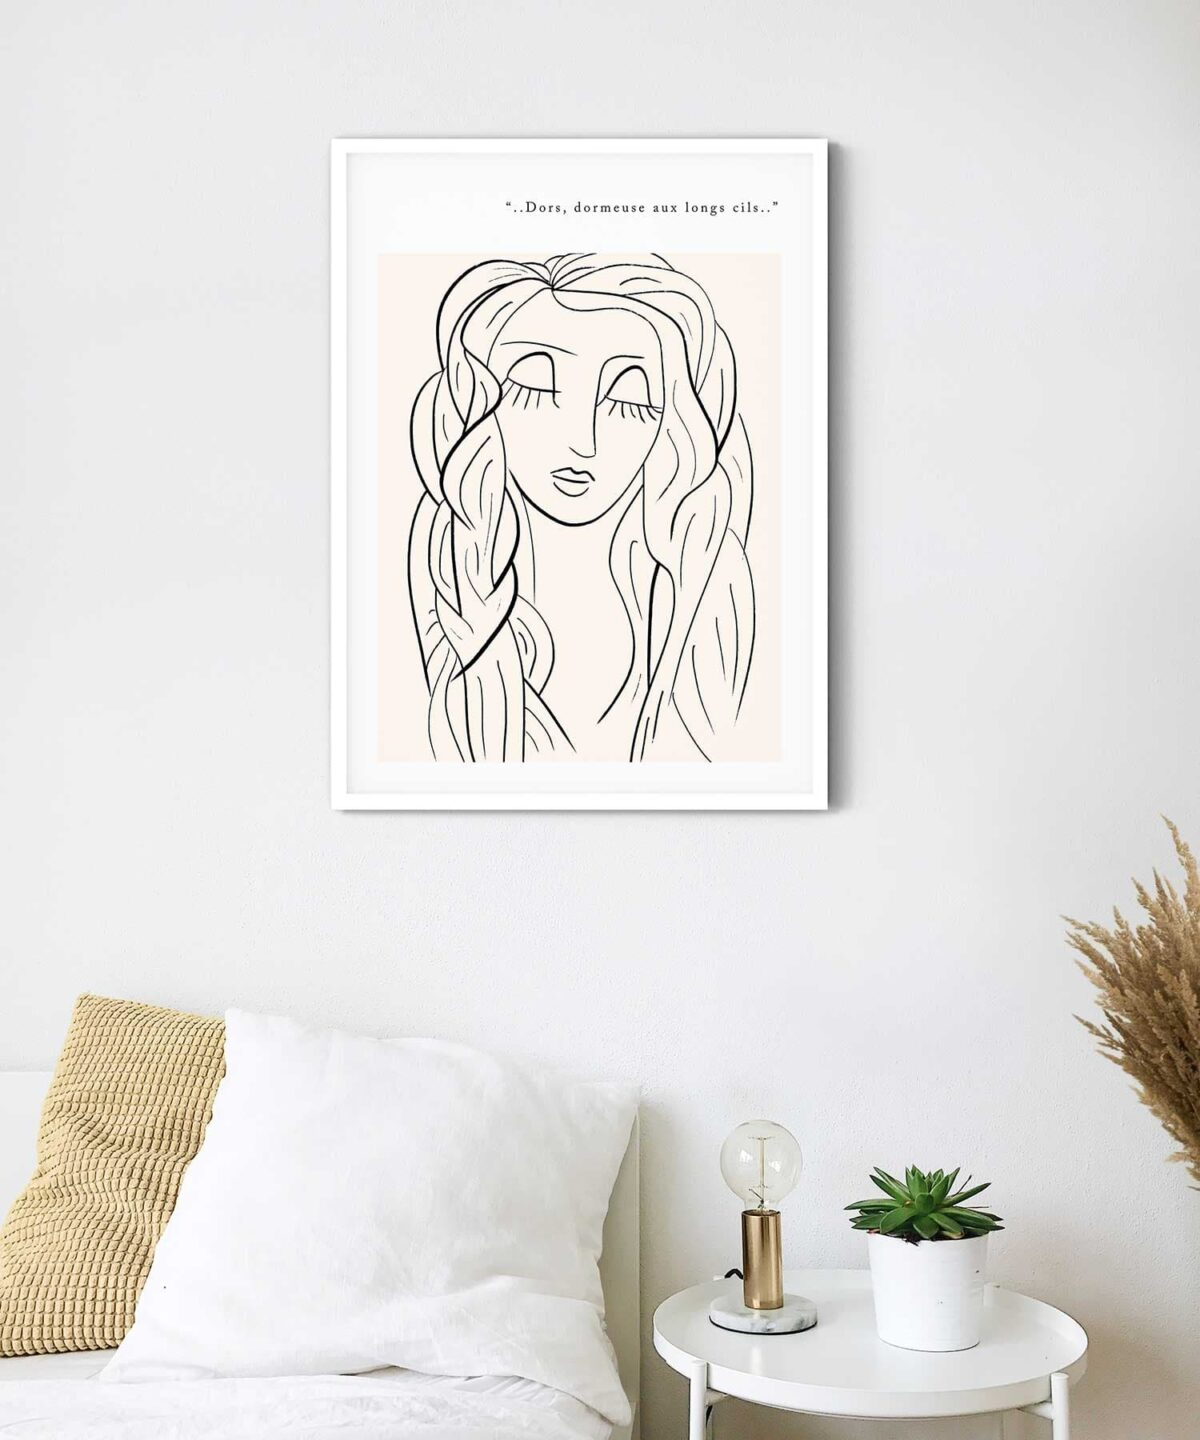 Lazy Eyes Poster on Wall with White Framed Duwart